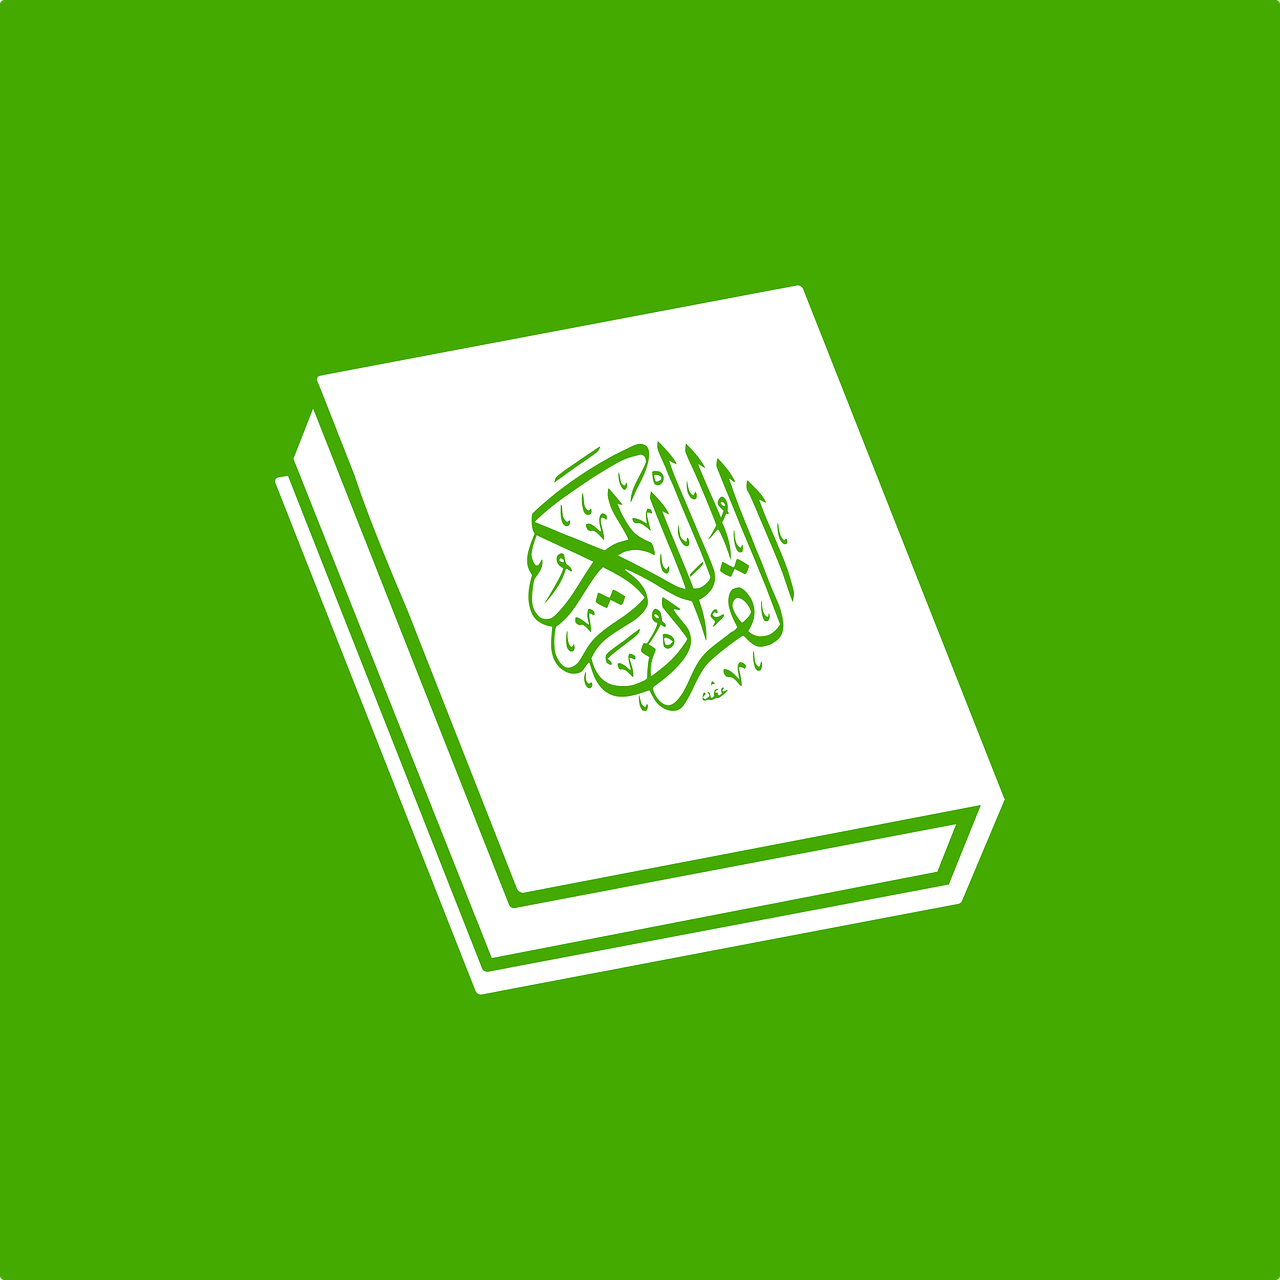 icon islam moslem free vector graphic on pixabay https creativecommons org licenses publicdomain